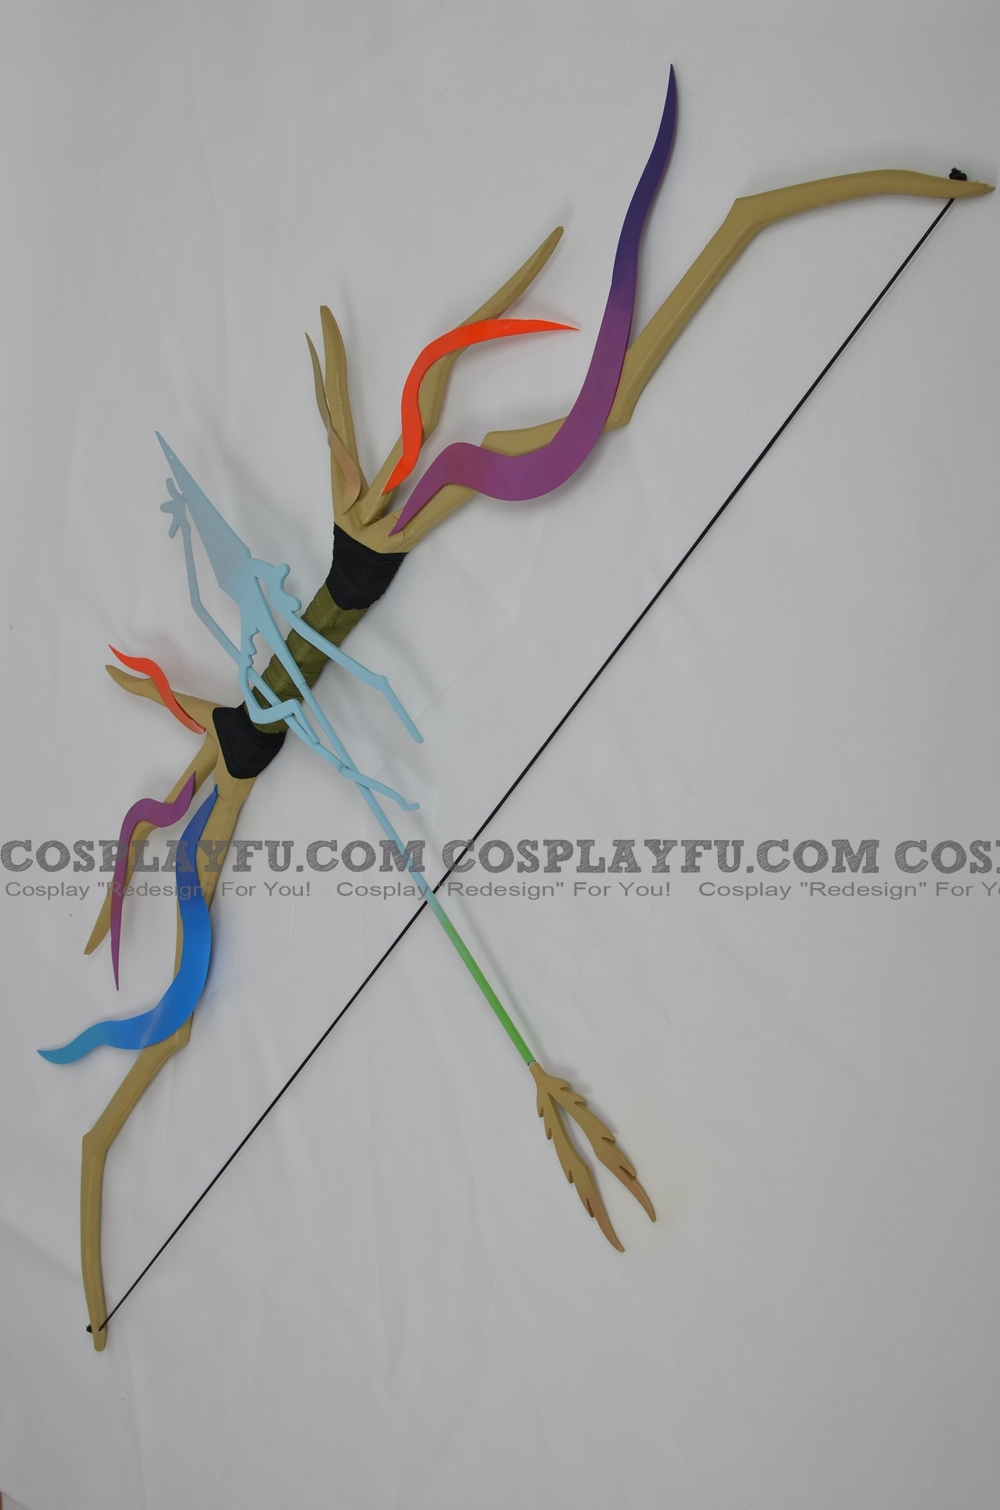 Pokémon Xerneas Cosplay (Bow and Arrow)